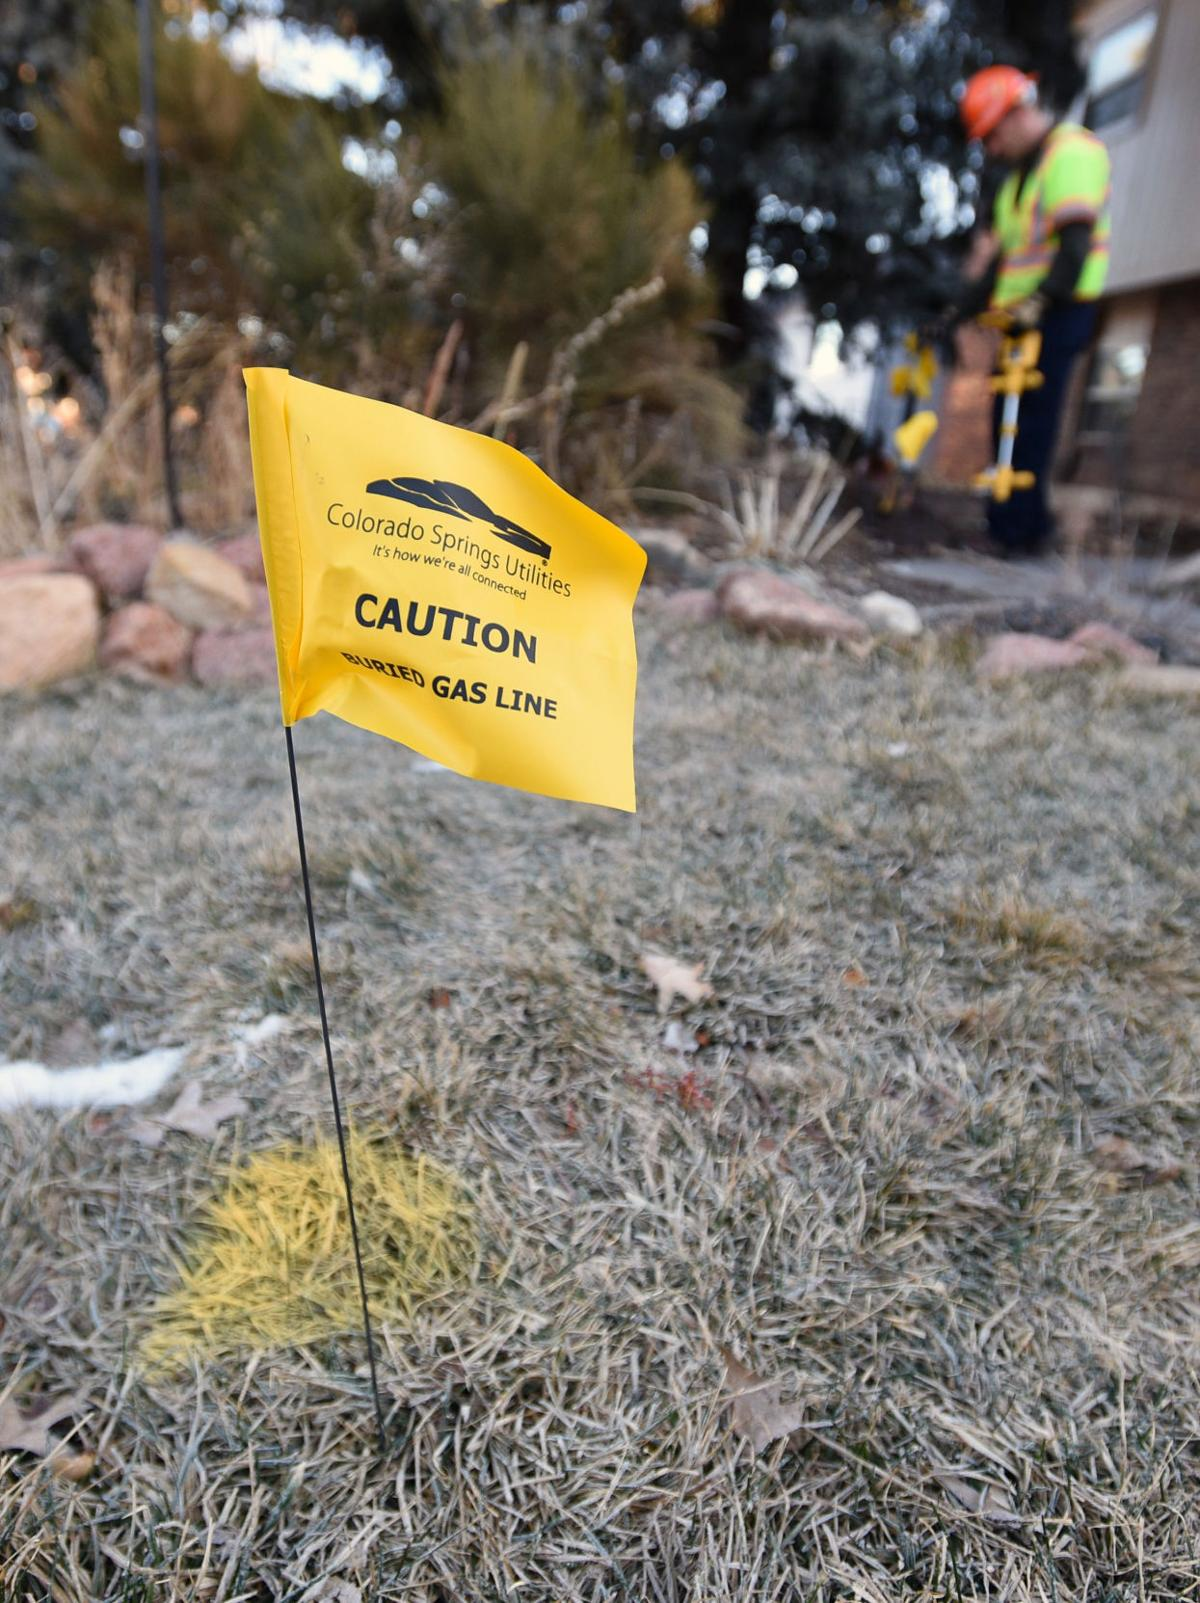 Before digging in a yard, Colorado Springs Utilities will send a specialist to mark the buried gas lines in your yard free of charge. (The Gazette/Jerilee Bennett)